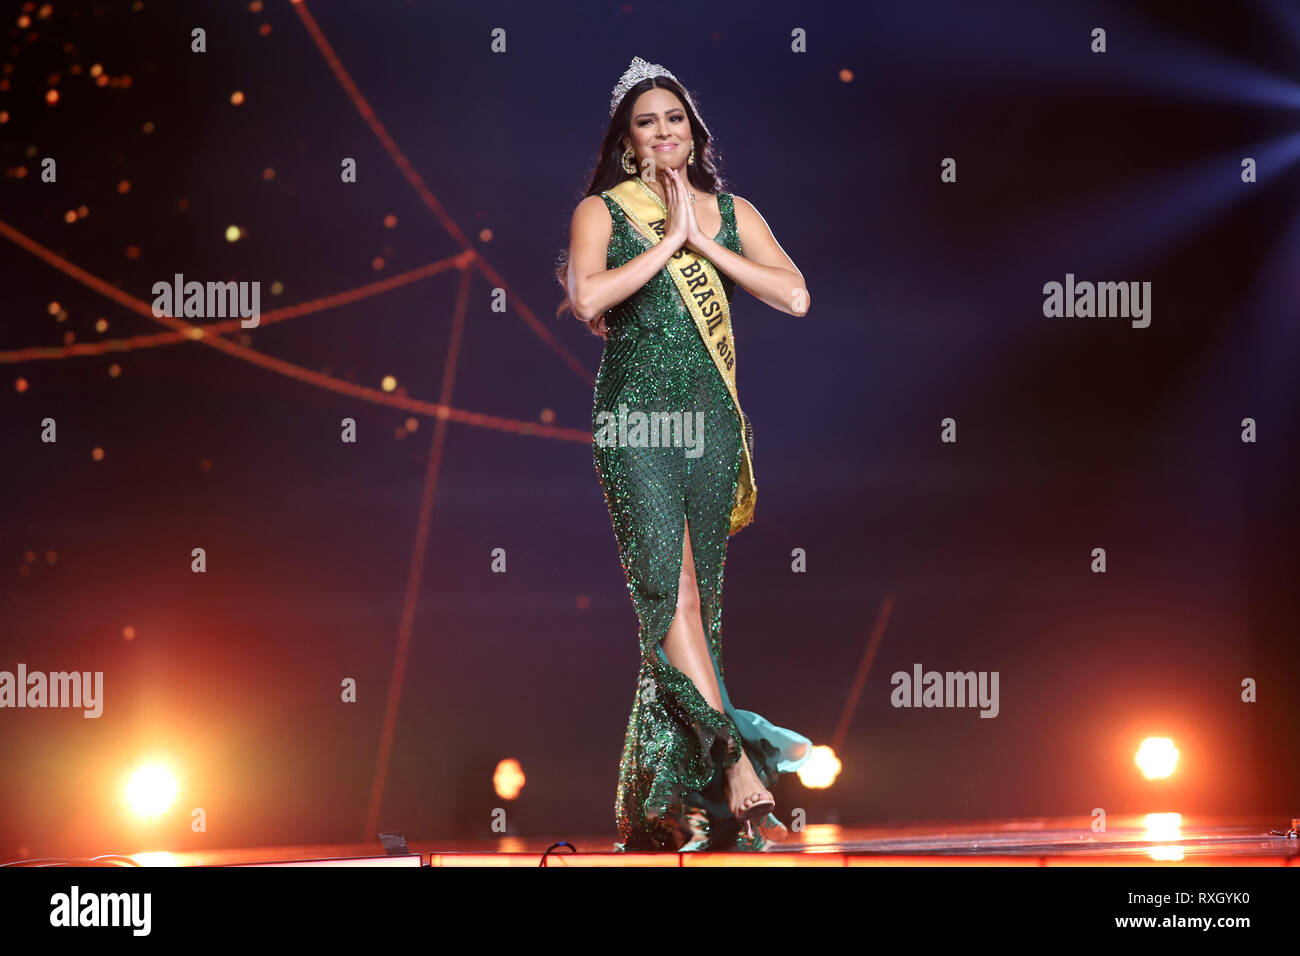 Sao Paulo, Brazil. 9th March 2019. Mayra Dias winner 2018 Be Emotion during contest Miss Brazil Be Emotion in the exhibition center São Paulo Expo in the south region of the city of São Paulo, 09. Credit: William Volcov/ZUMA Wire/Alamy Live News Stock Photo